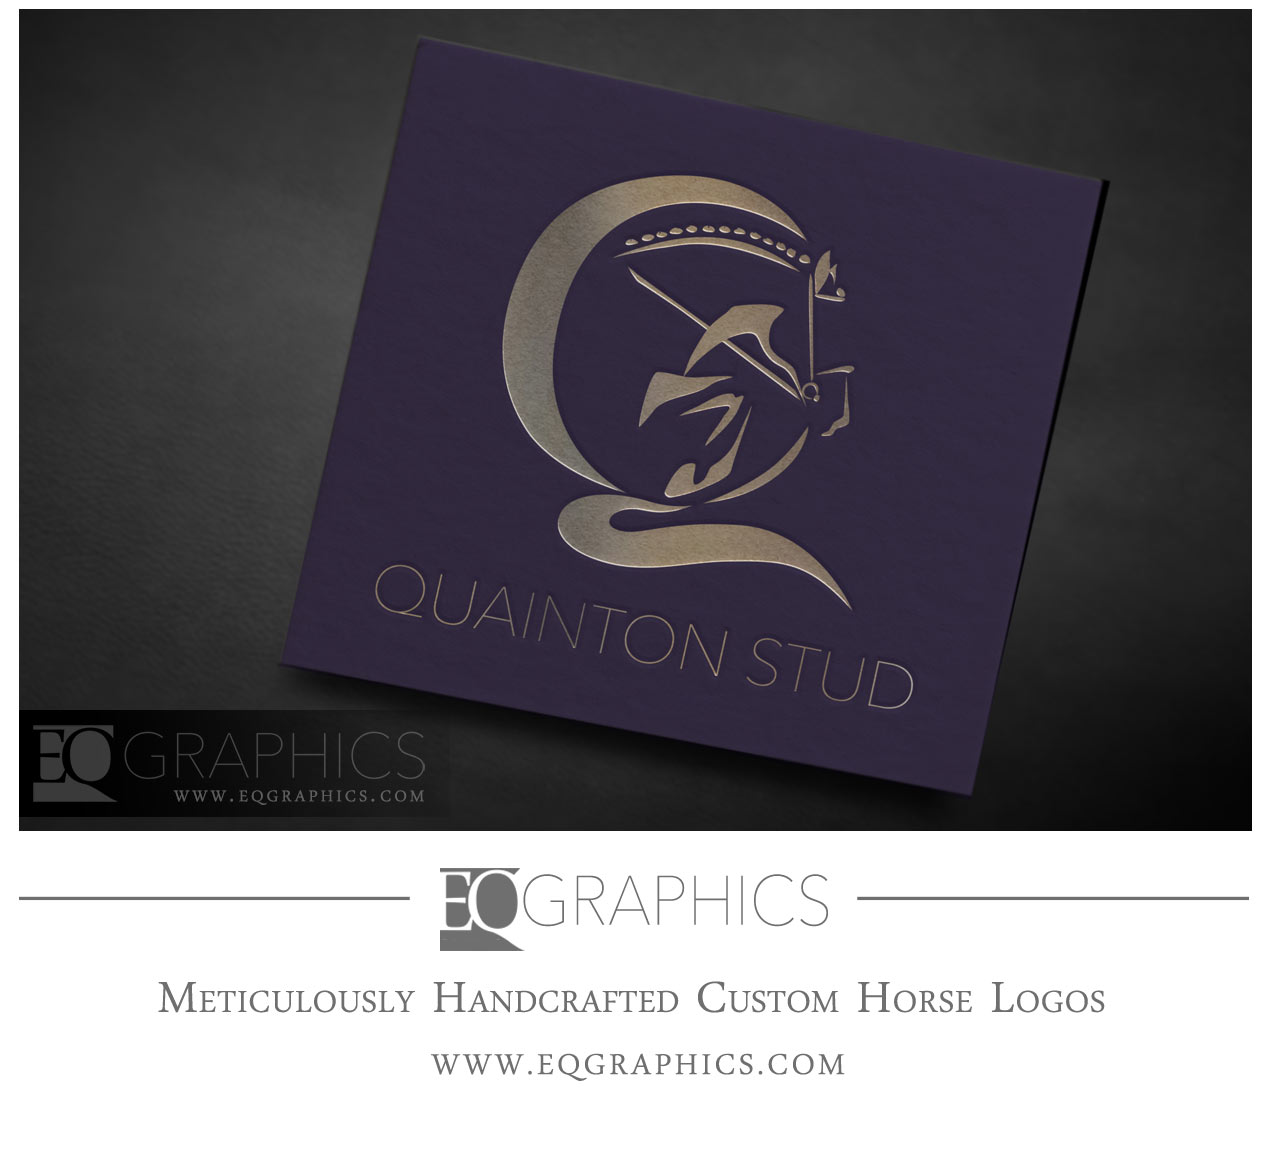 Quainton Stud UK Jumping Horse Logo Equestrian Show Jumper Facility Logos by EQ Graphics